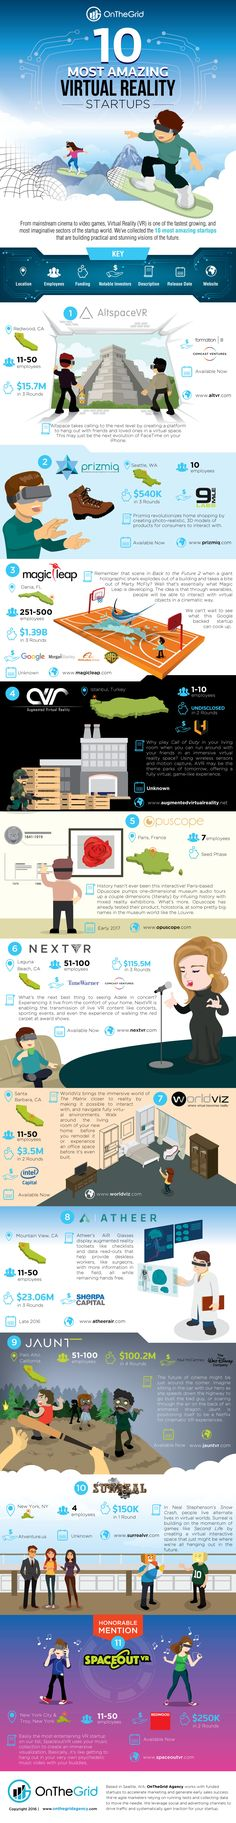 10 Most Amazing Virtual Reality Startups Infographic by OnTheGrid